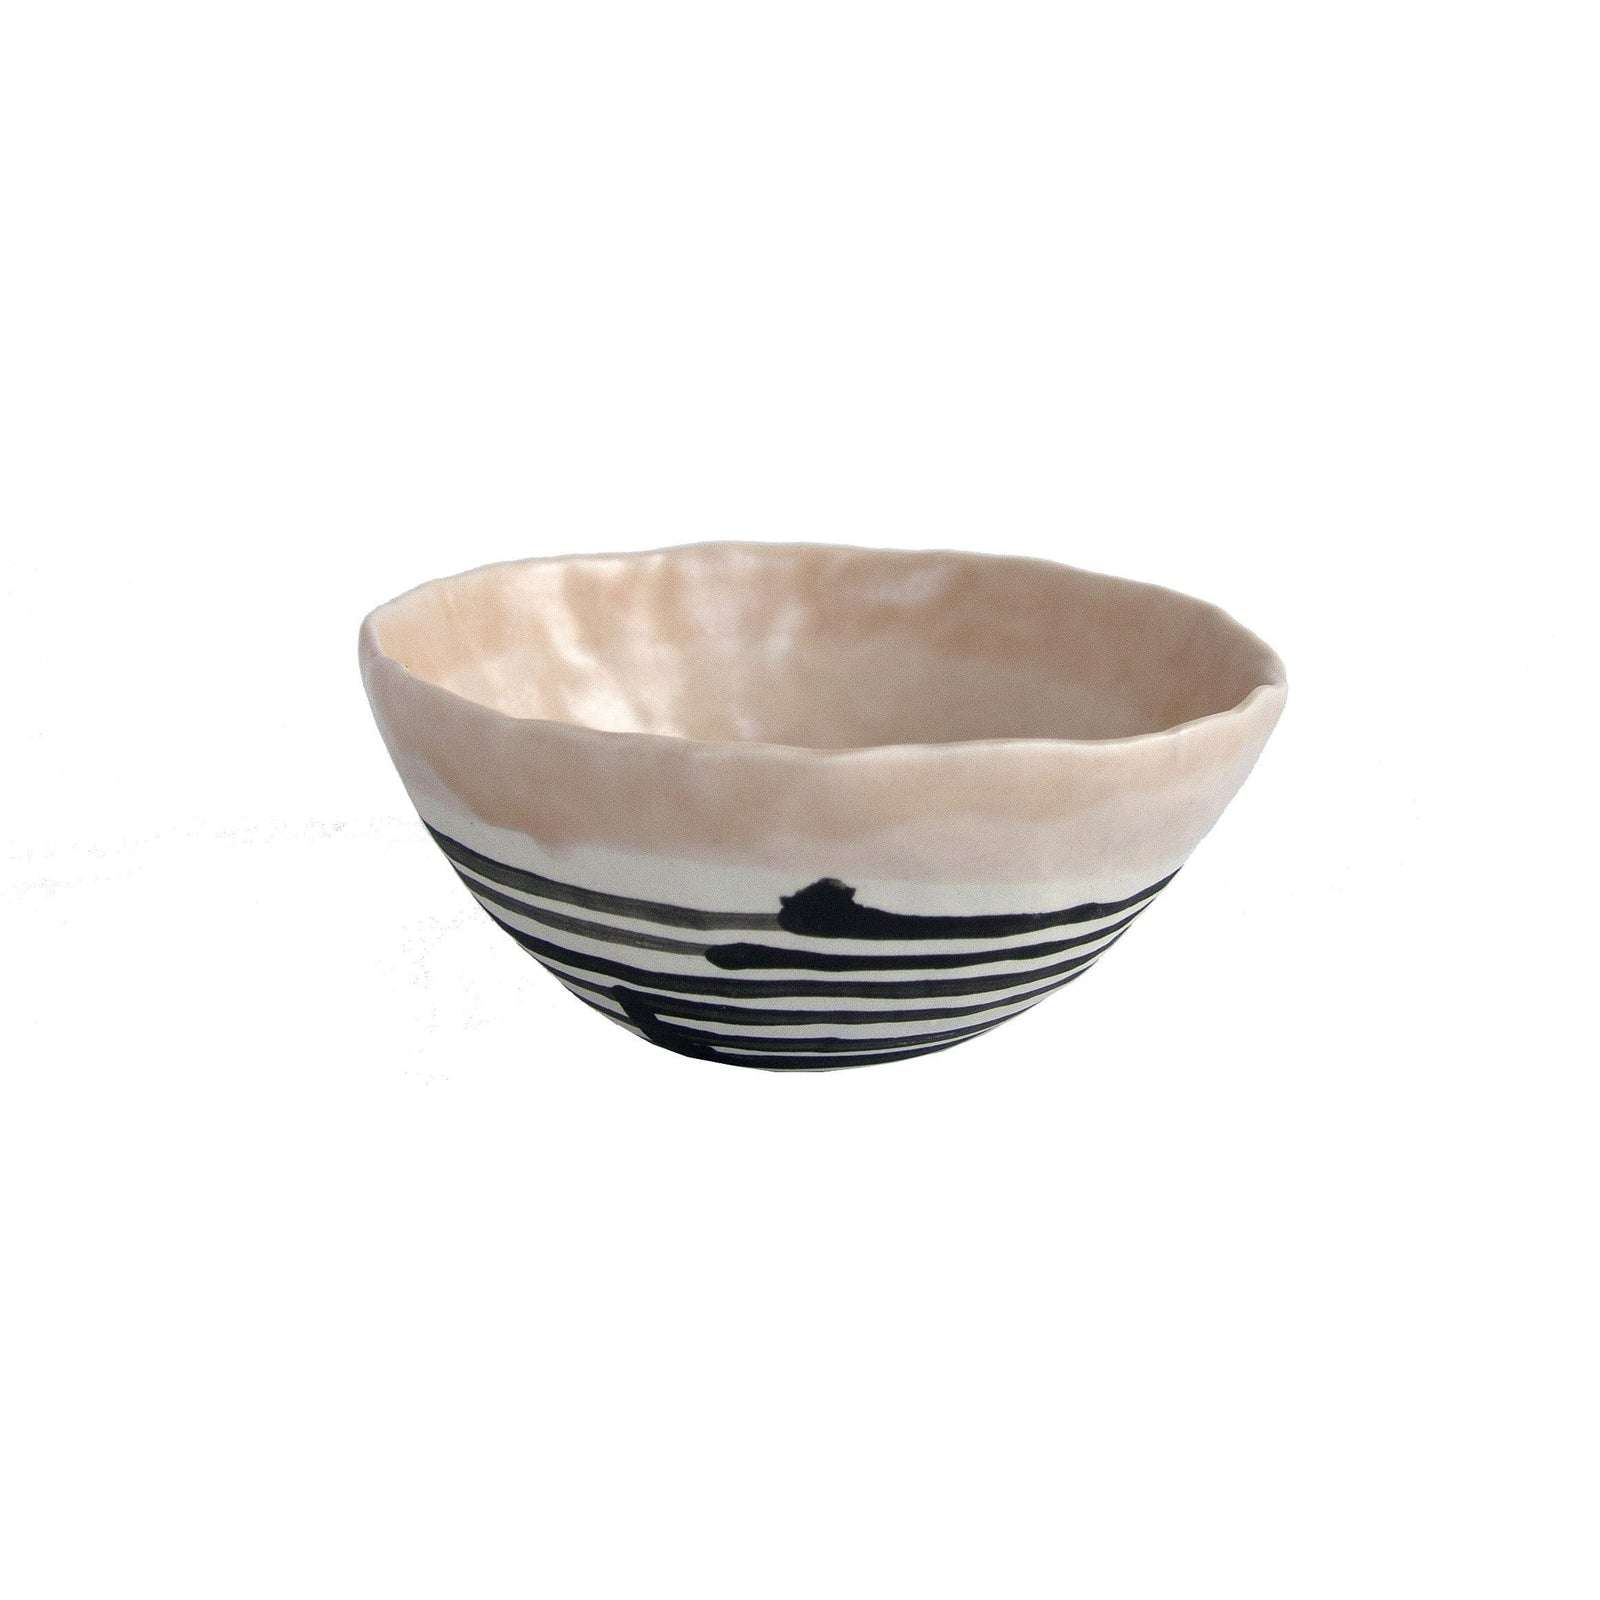 Elizabeth Benotti Handmade Ceramics Pottery Peach Pinched Striped Bowl, Medium